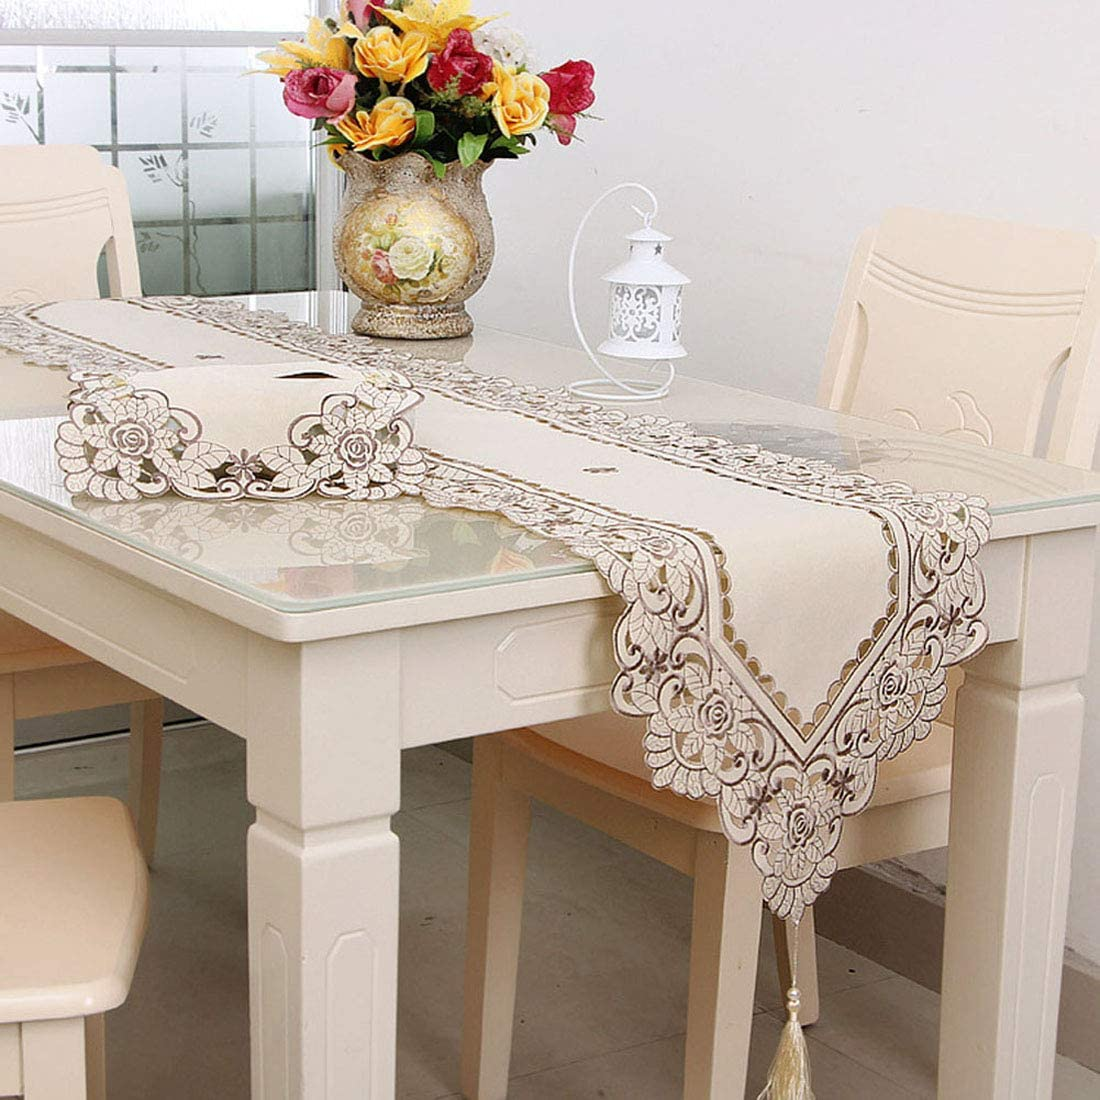 LeLehome Flowers Embroidered Long Satin Floral Dresser Table Runner Beige Home Dinning Decorative Lace Tapestry - Brown Flower (15 Inch X 77 Inch)